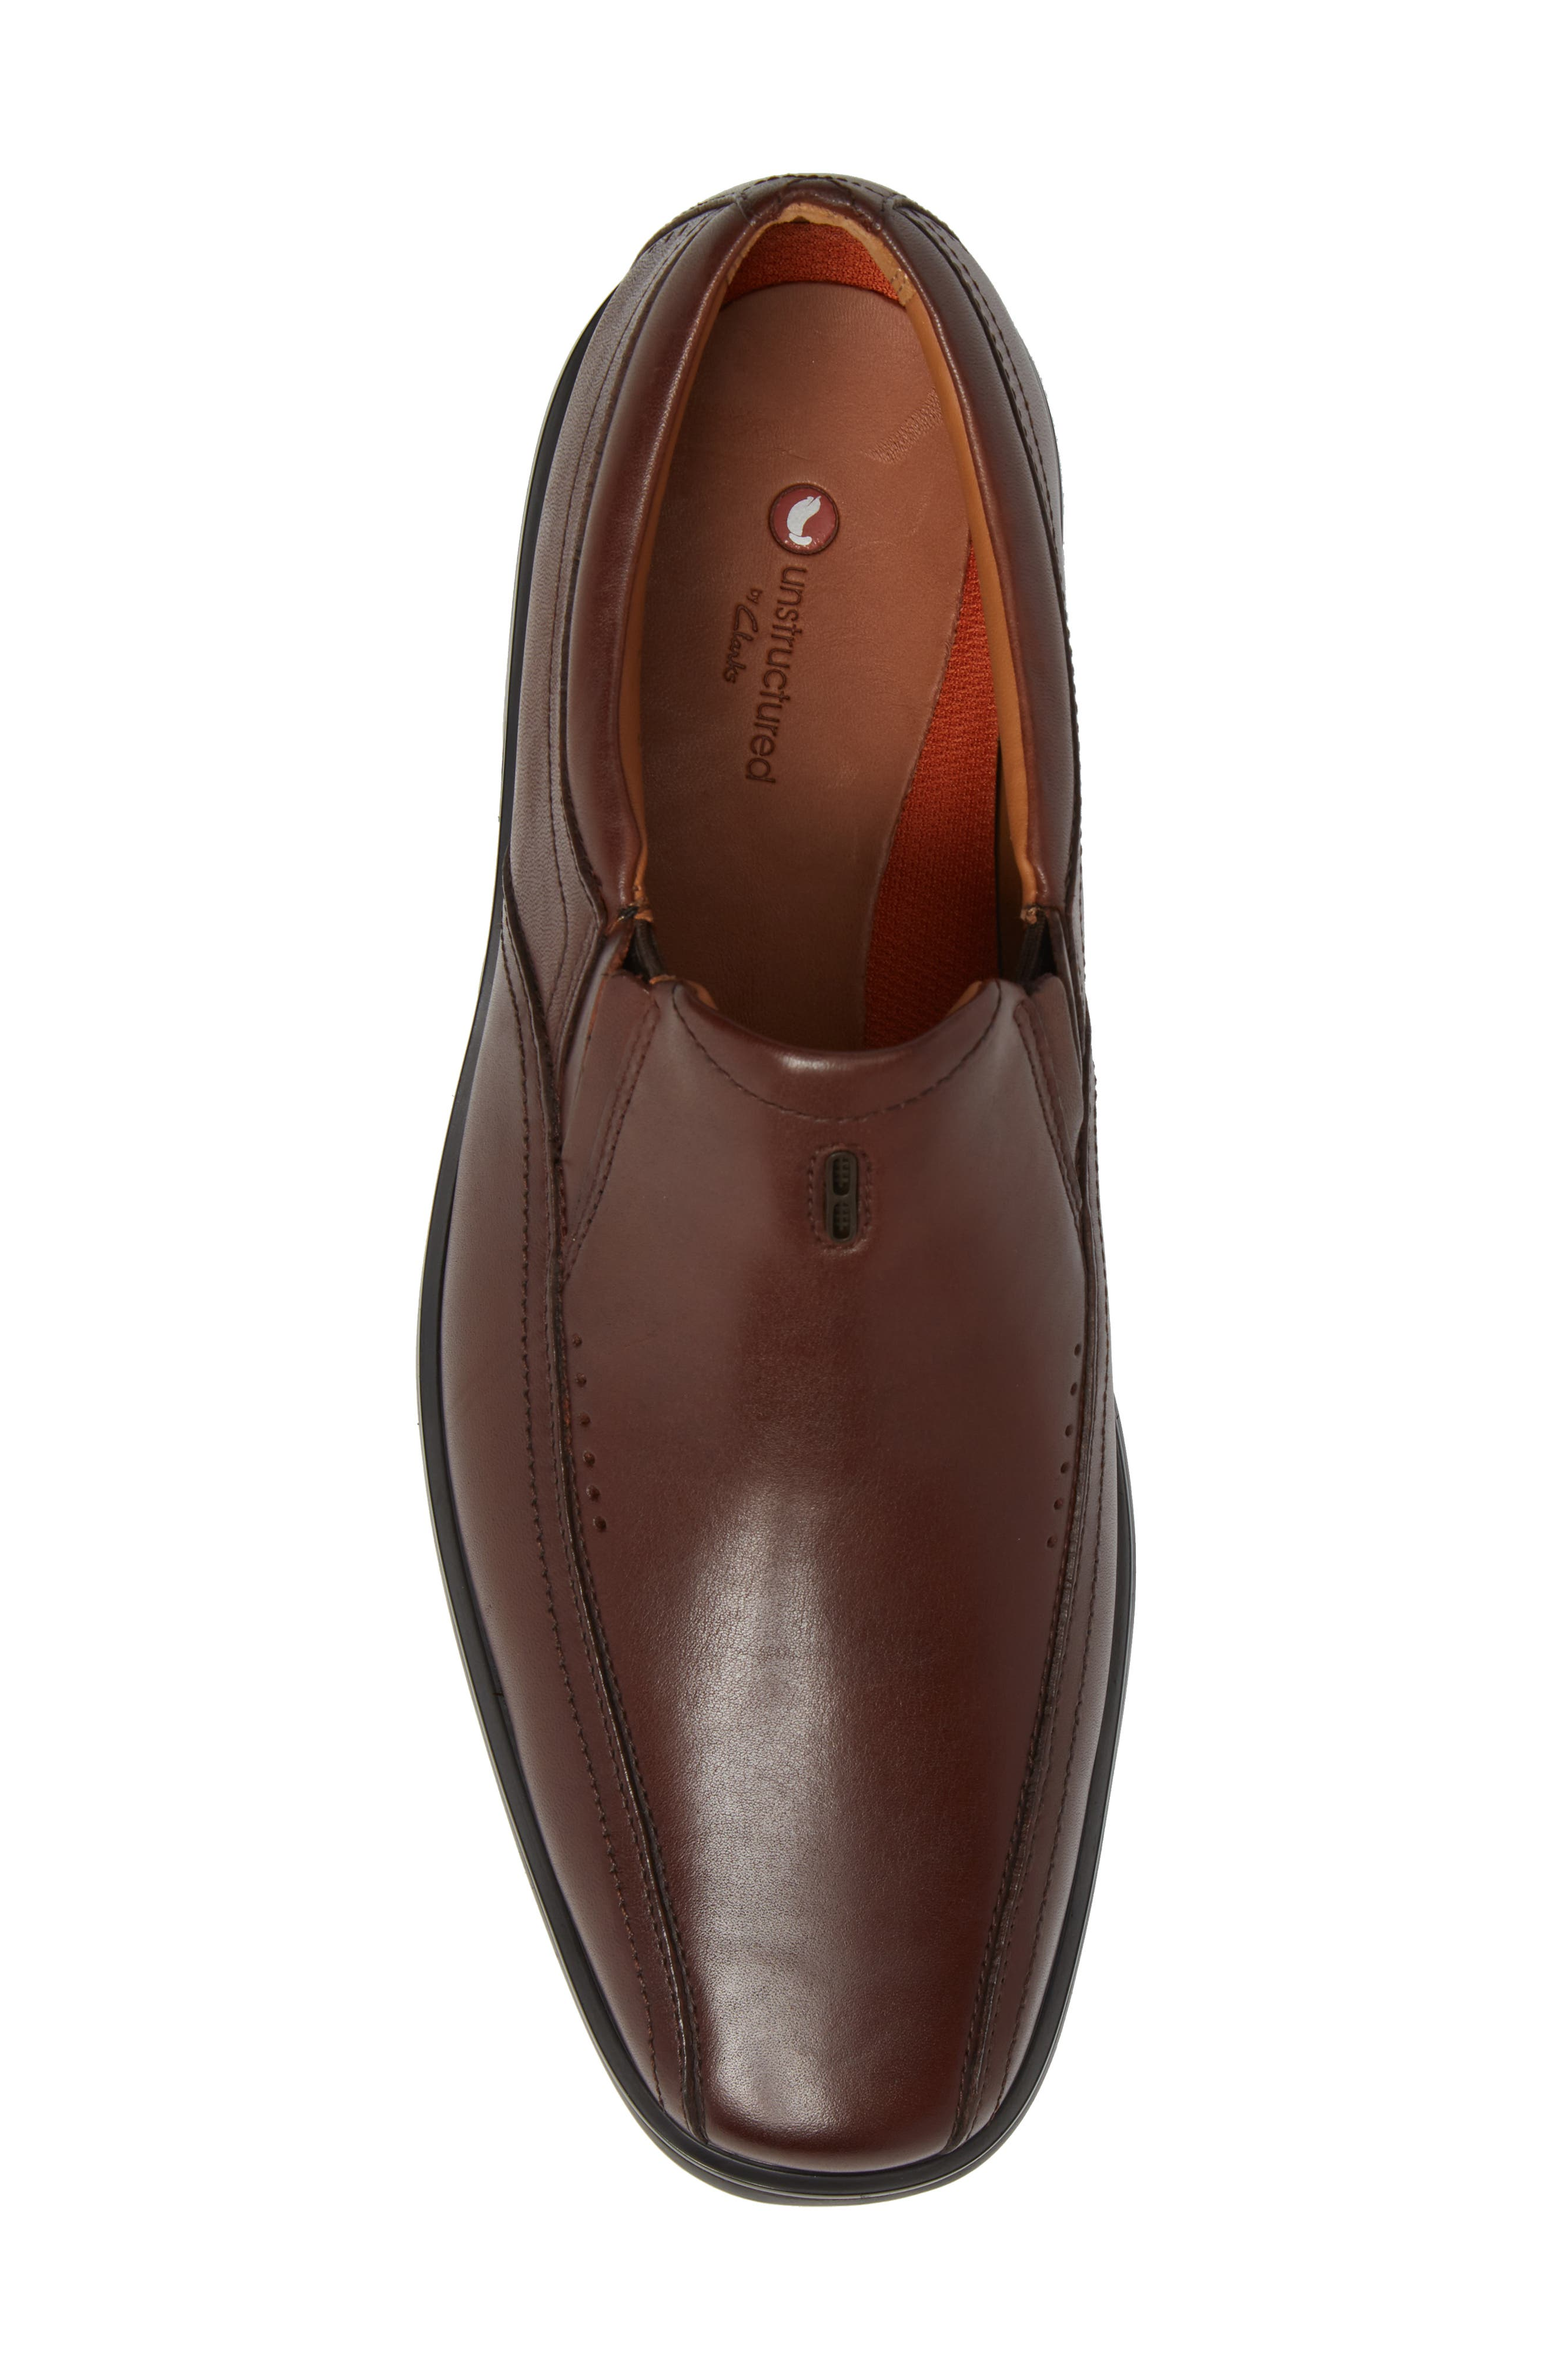 Un.Sheridan Go Loafer,                             Alternate thumbnail 5, color,                             Brown Leather